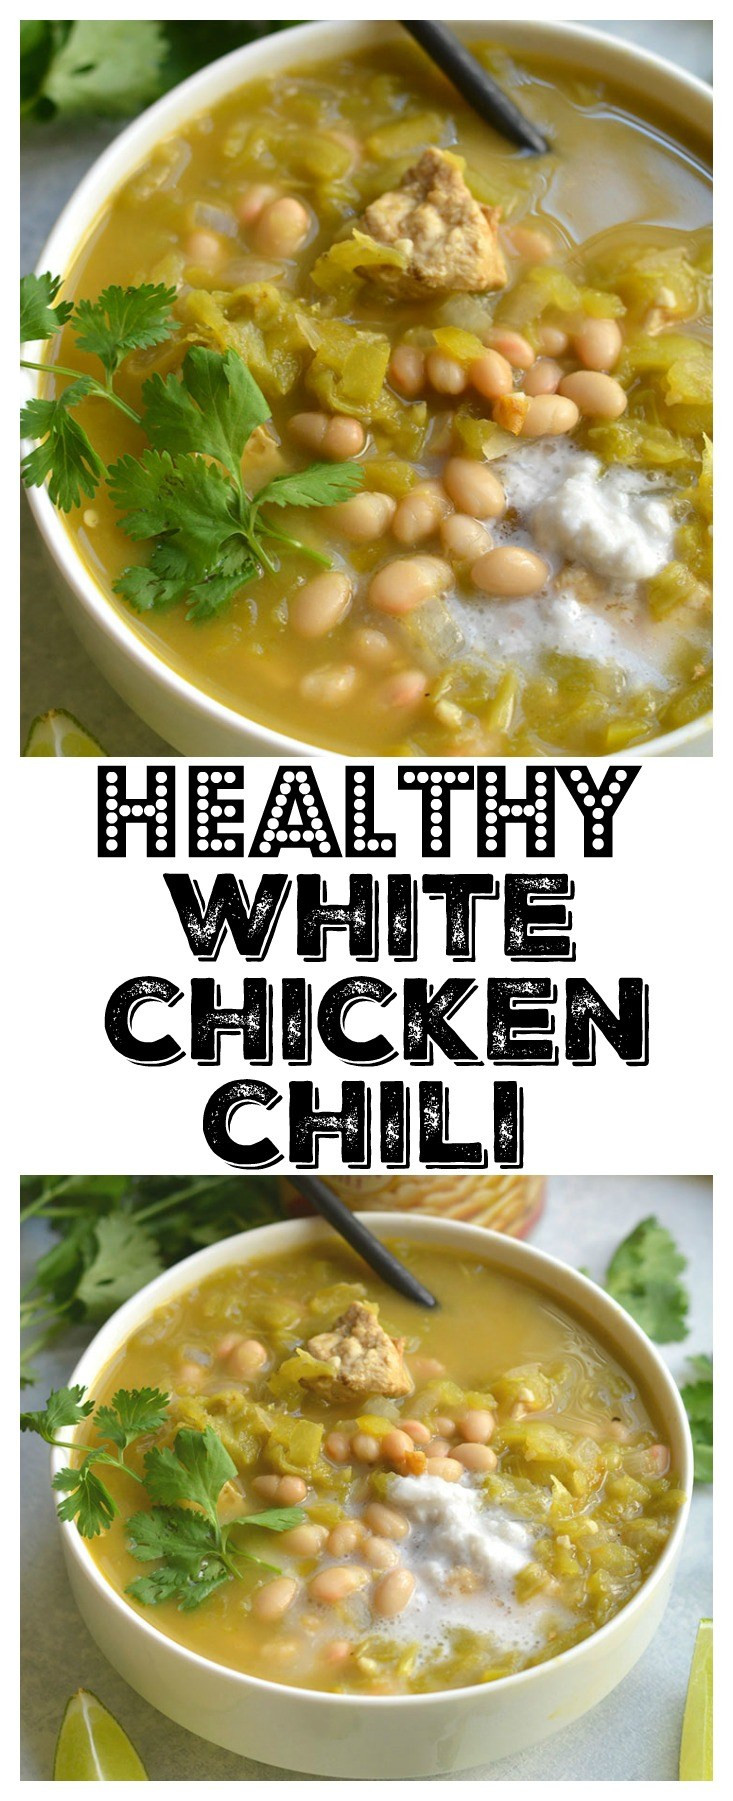 White Chicken Chili Healthy  Healthy White Chicken Chili GF Low Cal Skinny Fitalicious